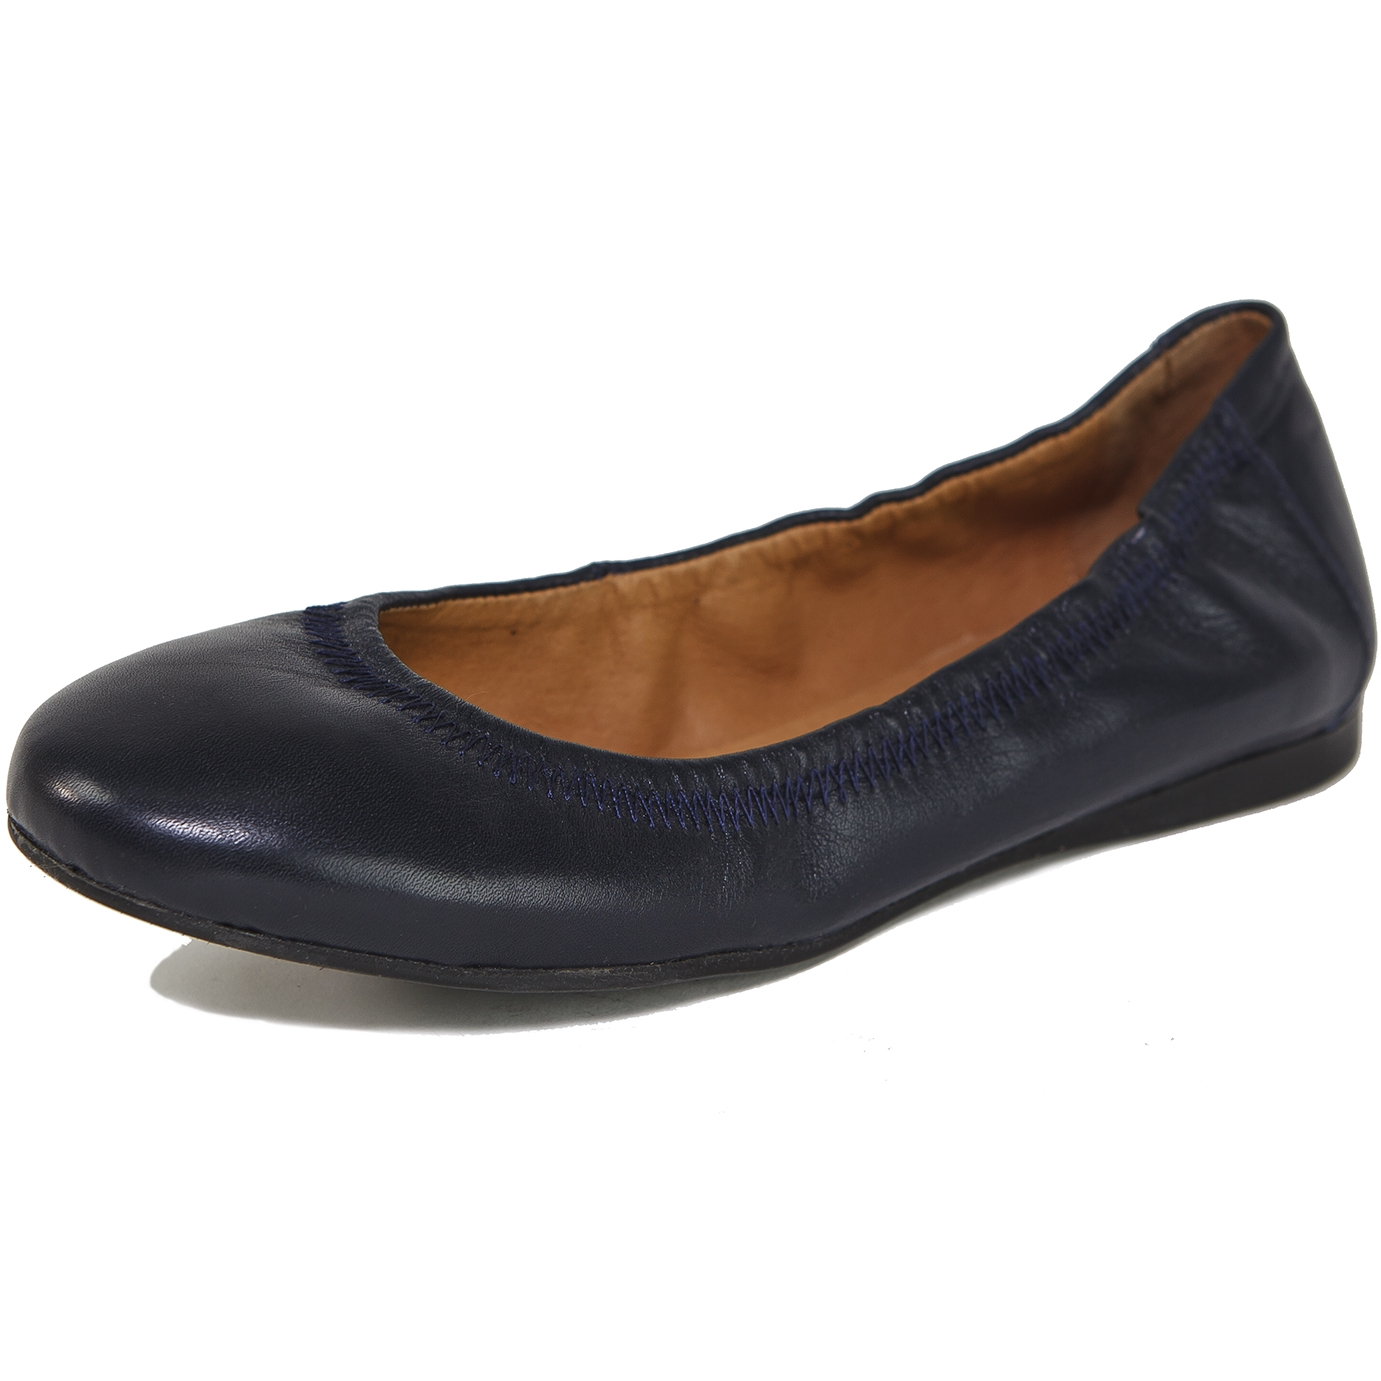 9fa443f71d92 Alpine Swiss Womens Shoes Ballet Flats Genuine European Leather Comfort  Loafer